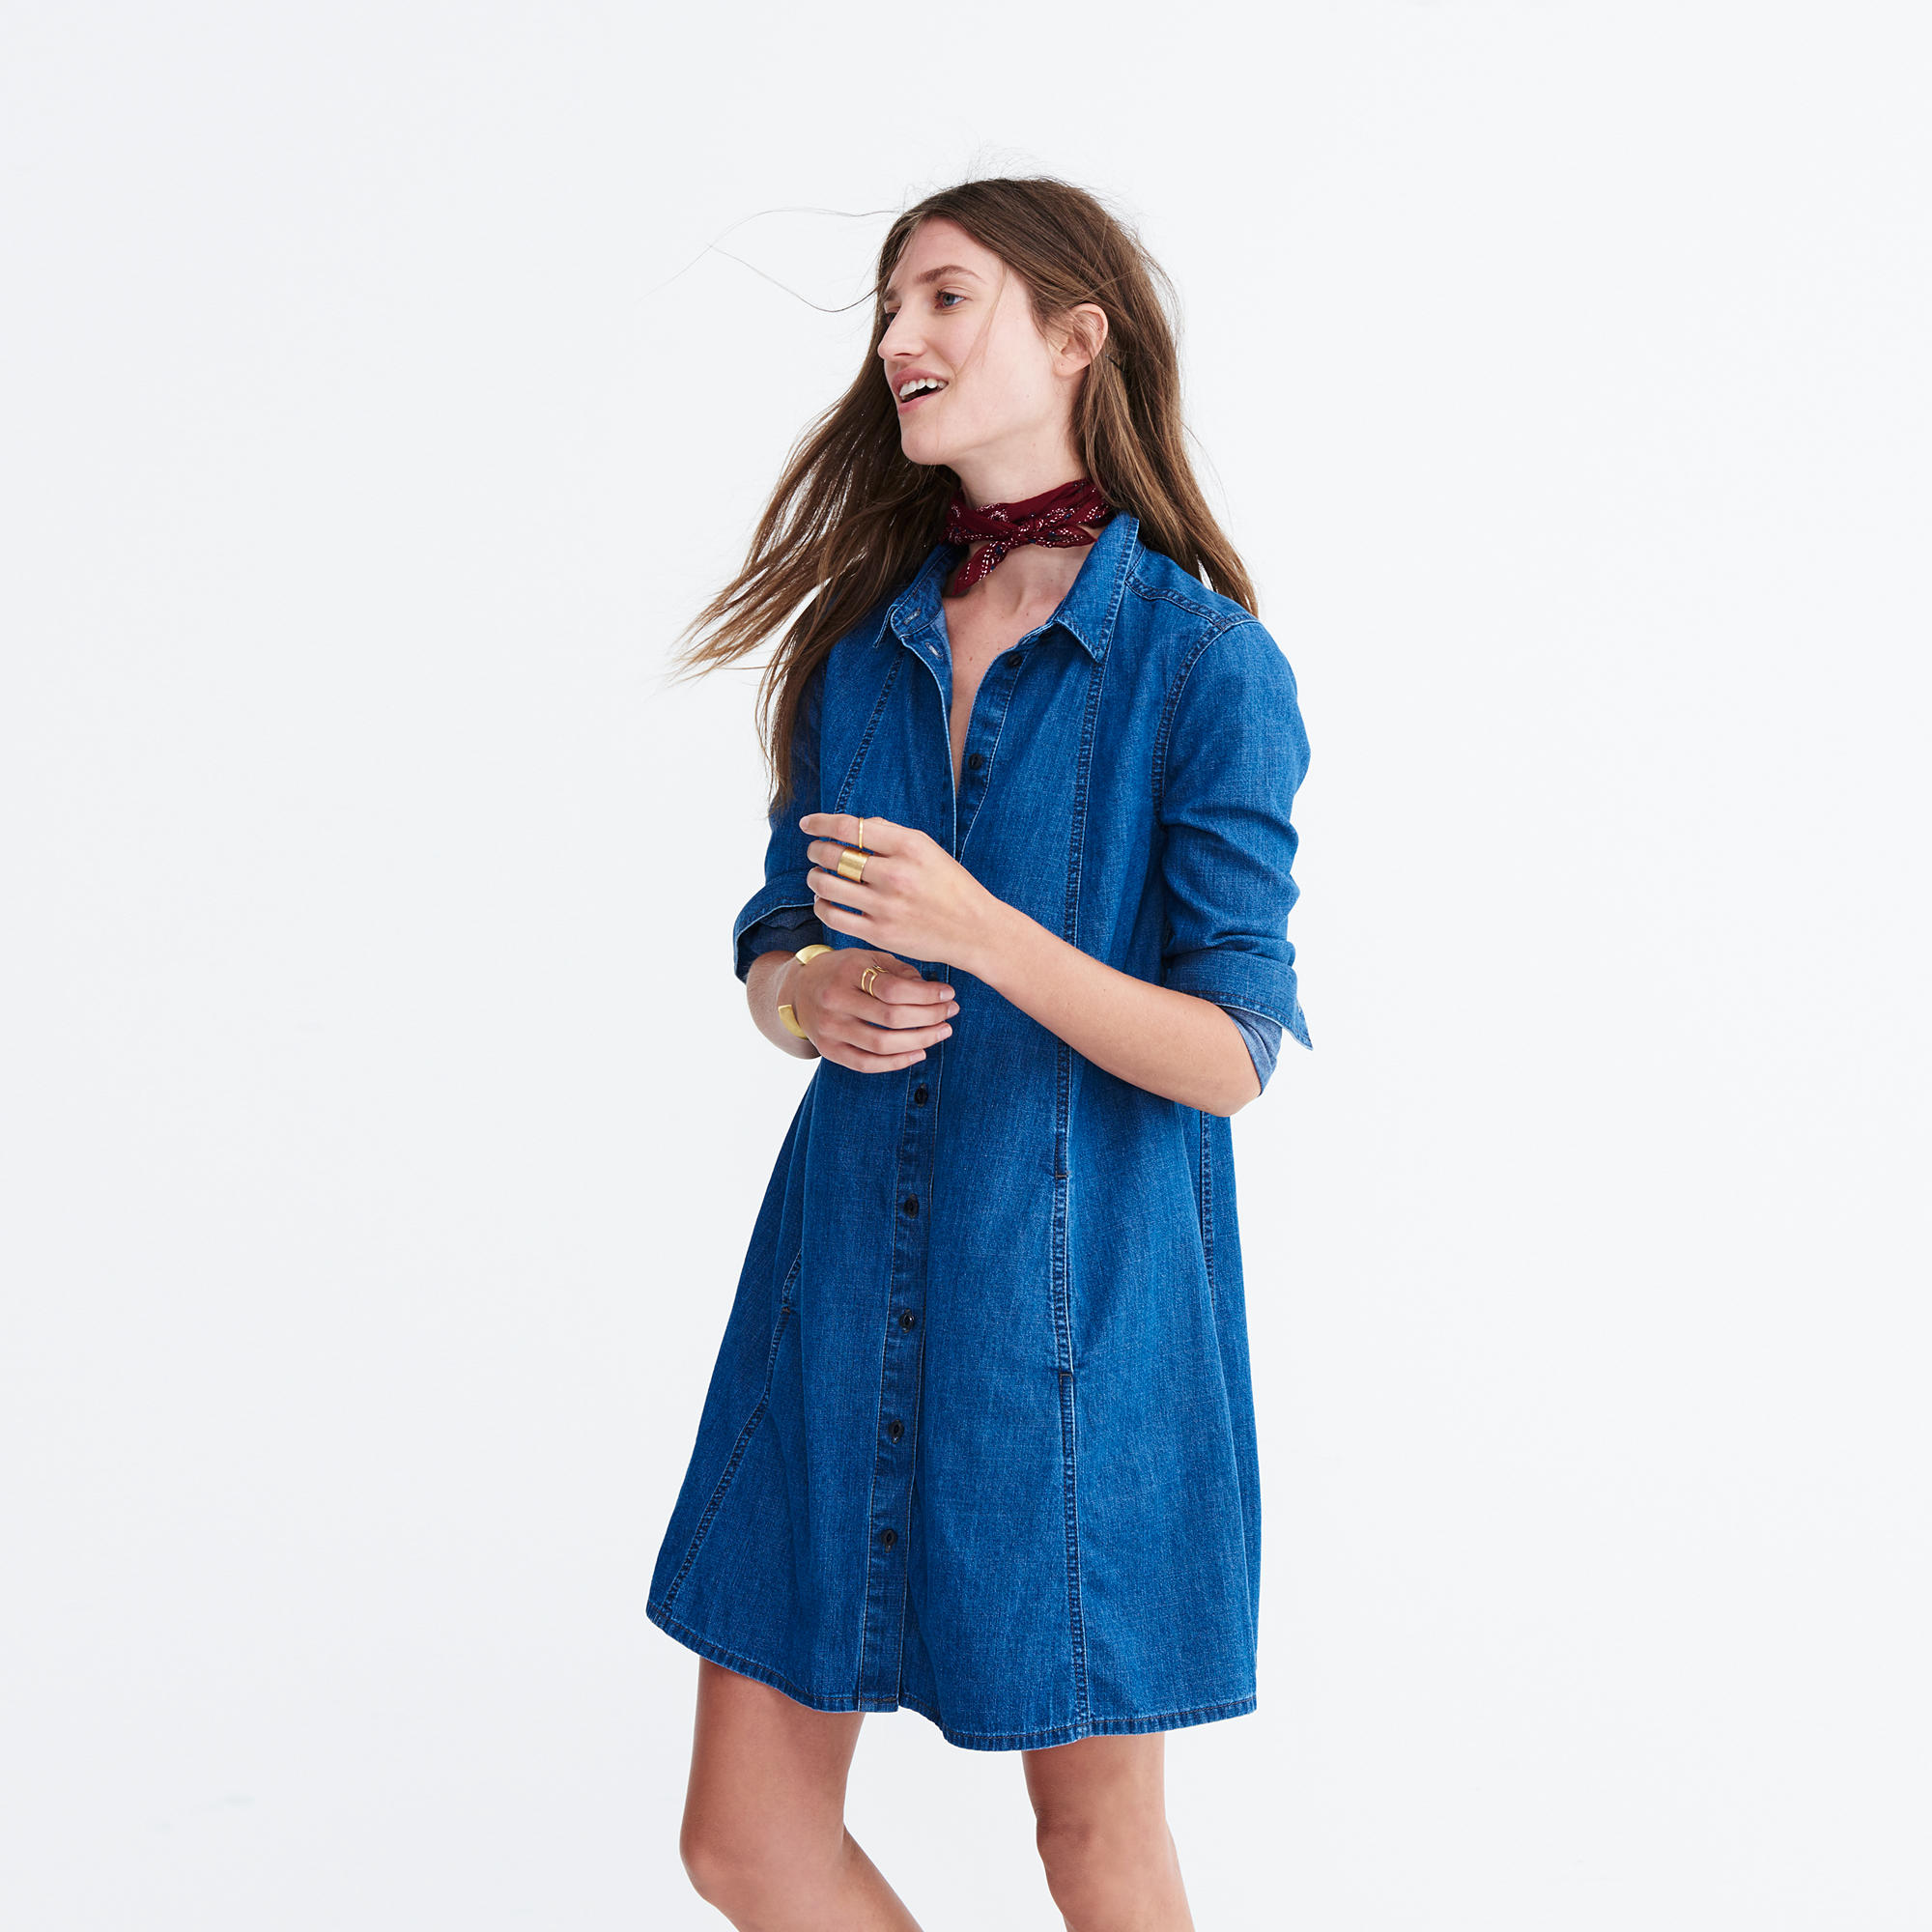 Denim A-Line Shirtdress : overalls & more denim | Madewell